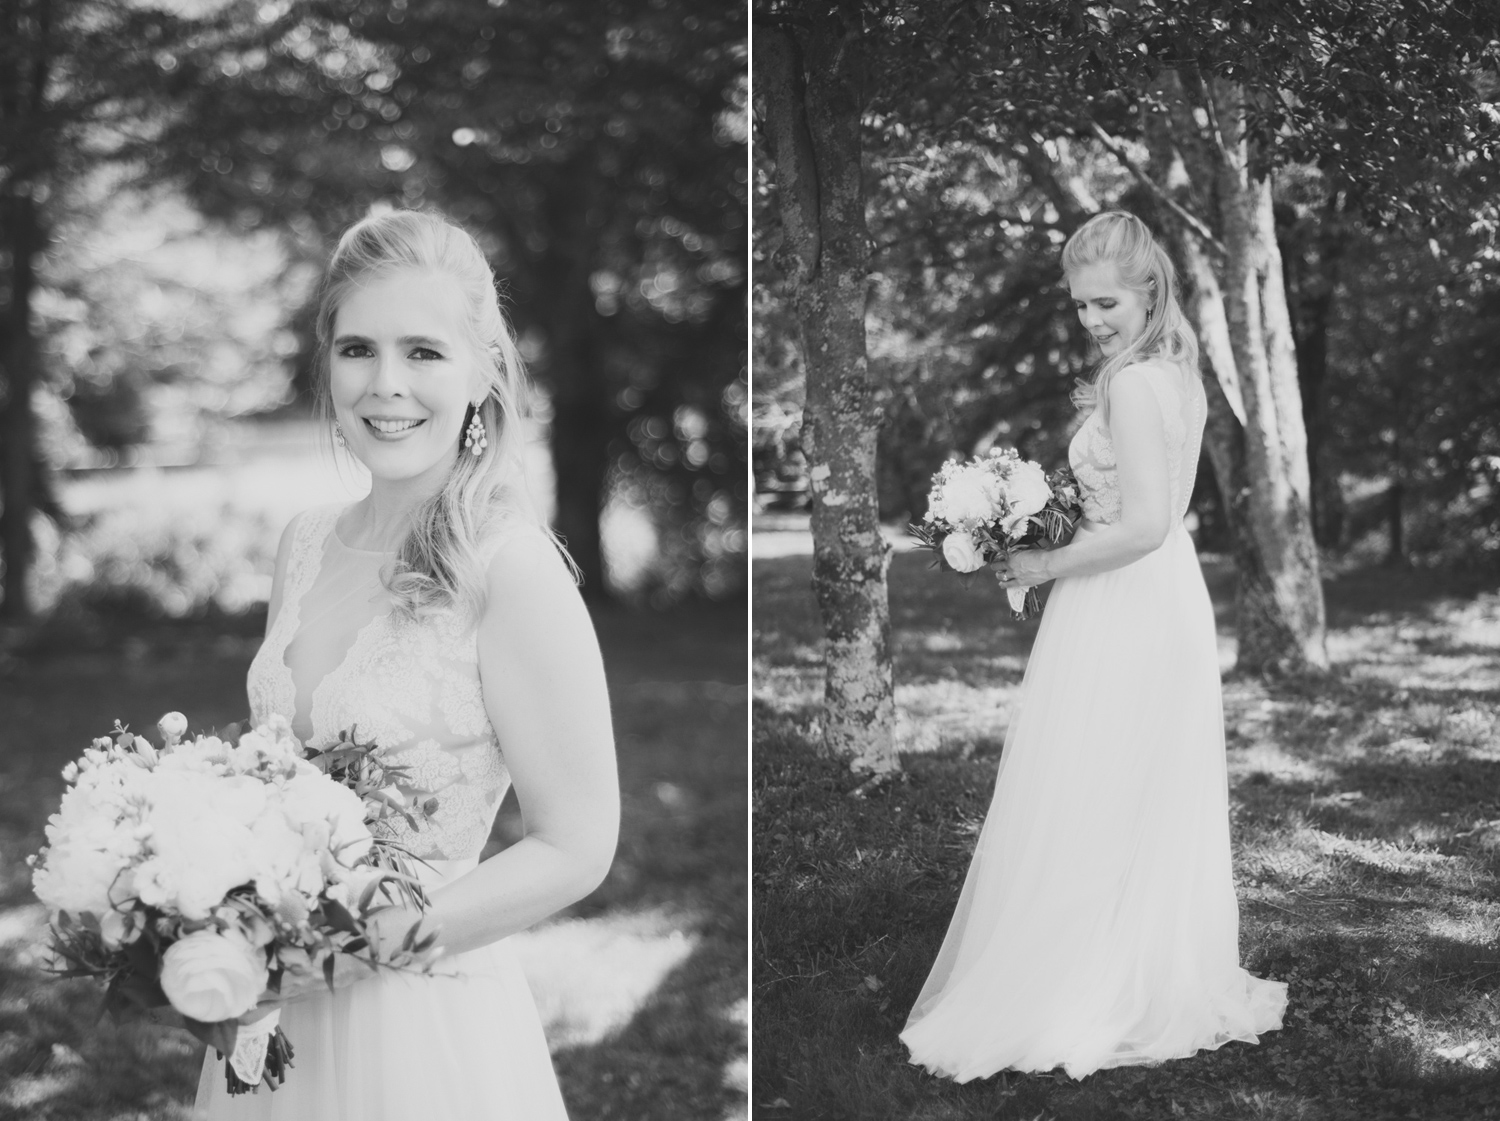 Chattanooga-Wedding-Photographer-LeahAndMark-0028